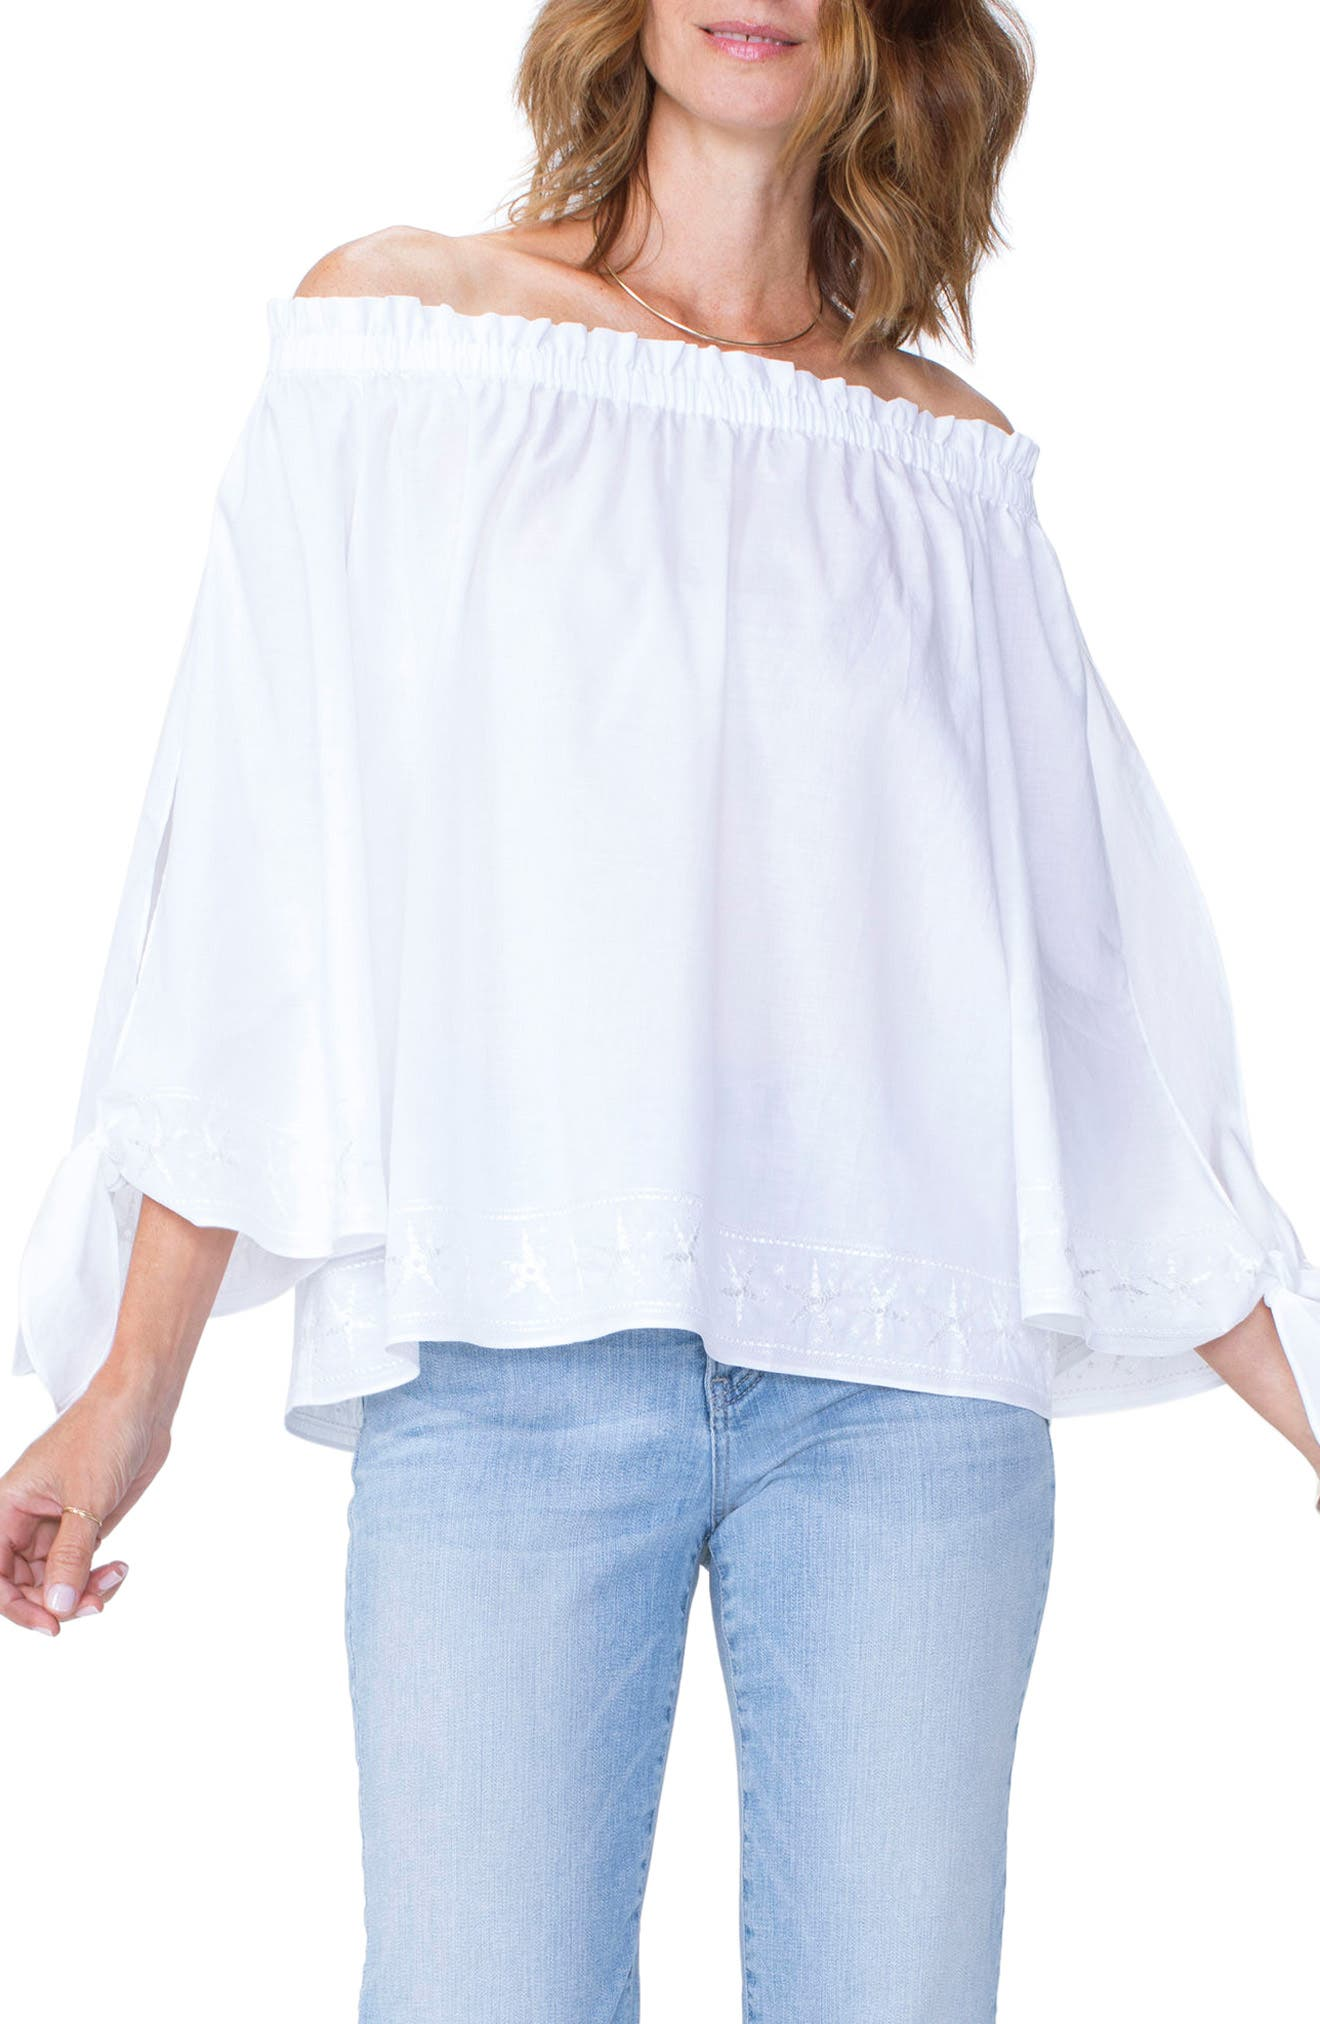 Tie Sleeve Off the Shoulder Top,                             Main thumbnail 1, color,                             103